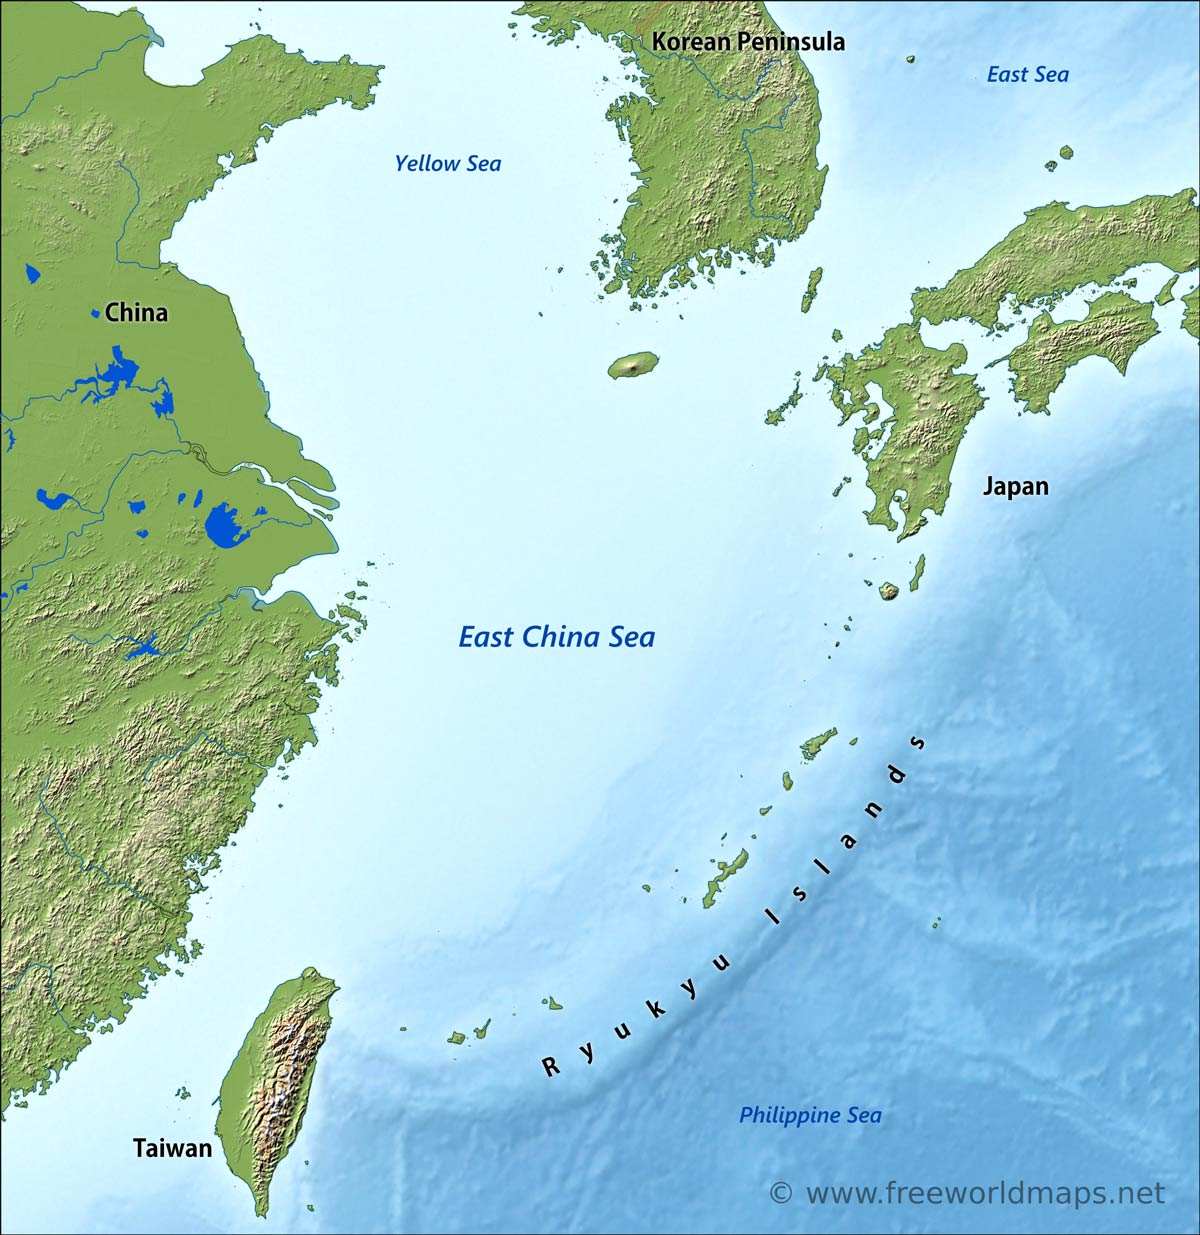 East China Sea map by Freeworldmapsnet